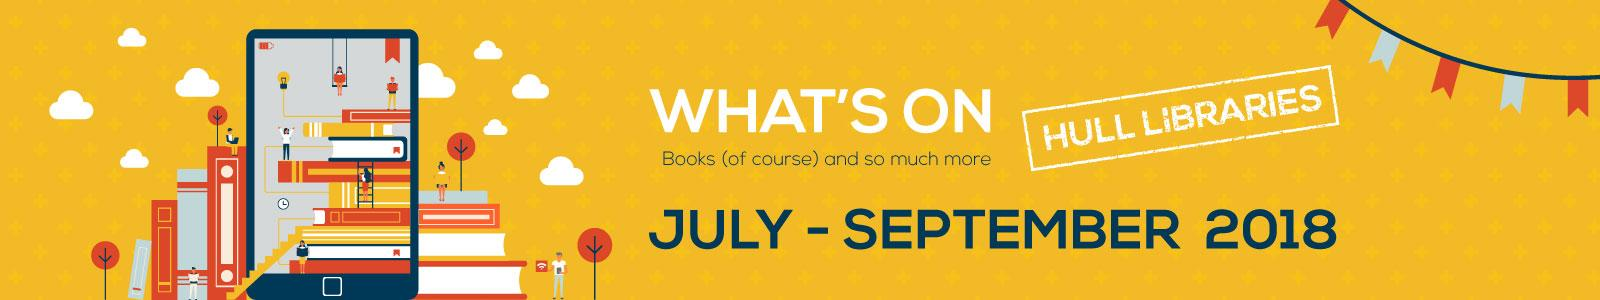 Events at Hull Libraries